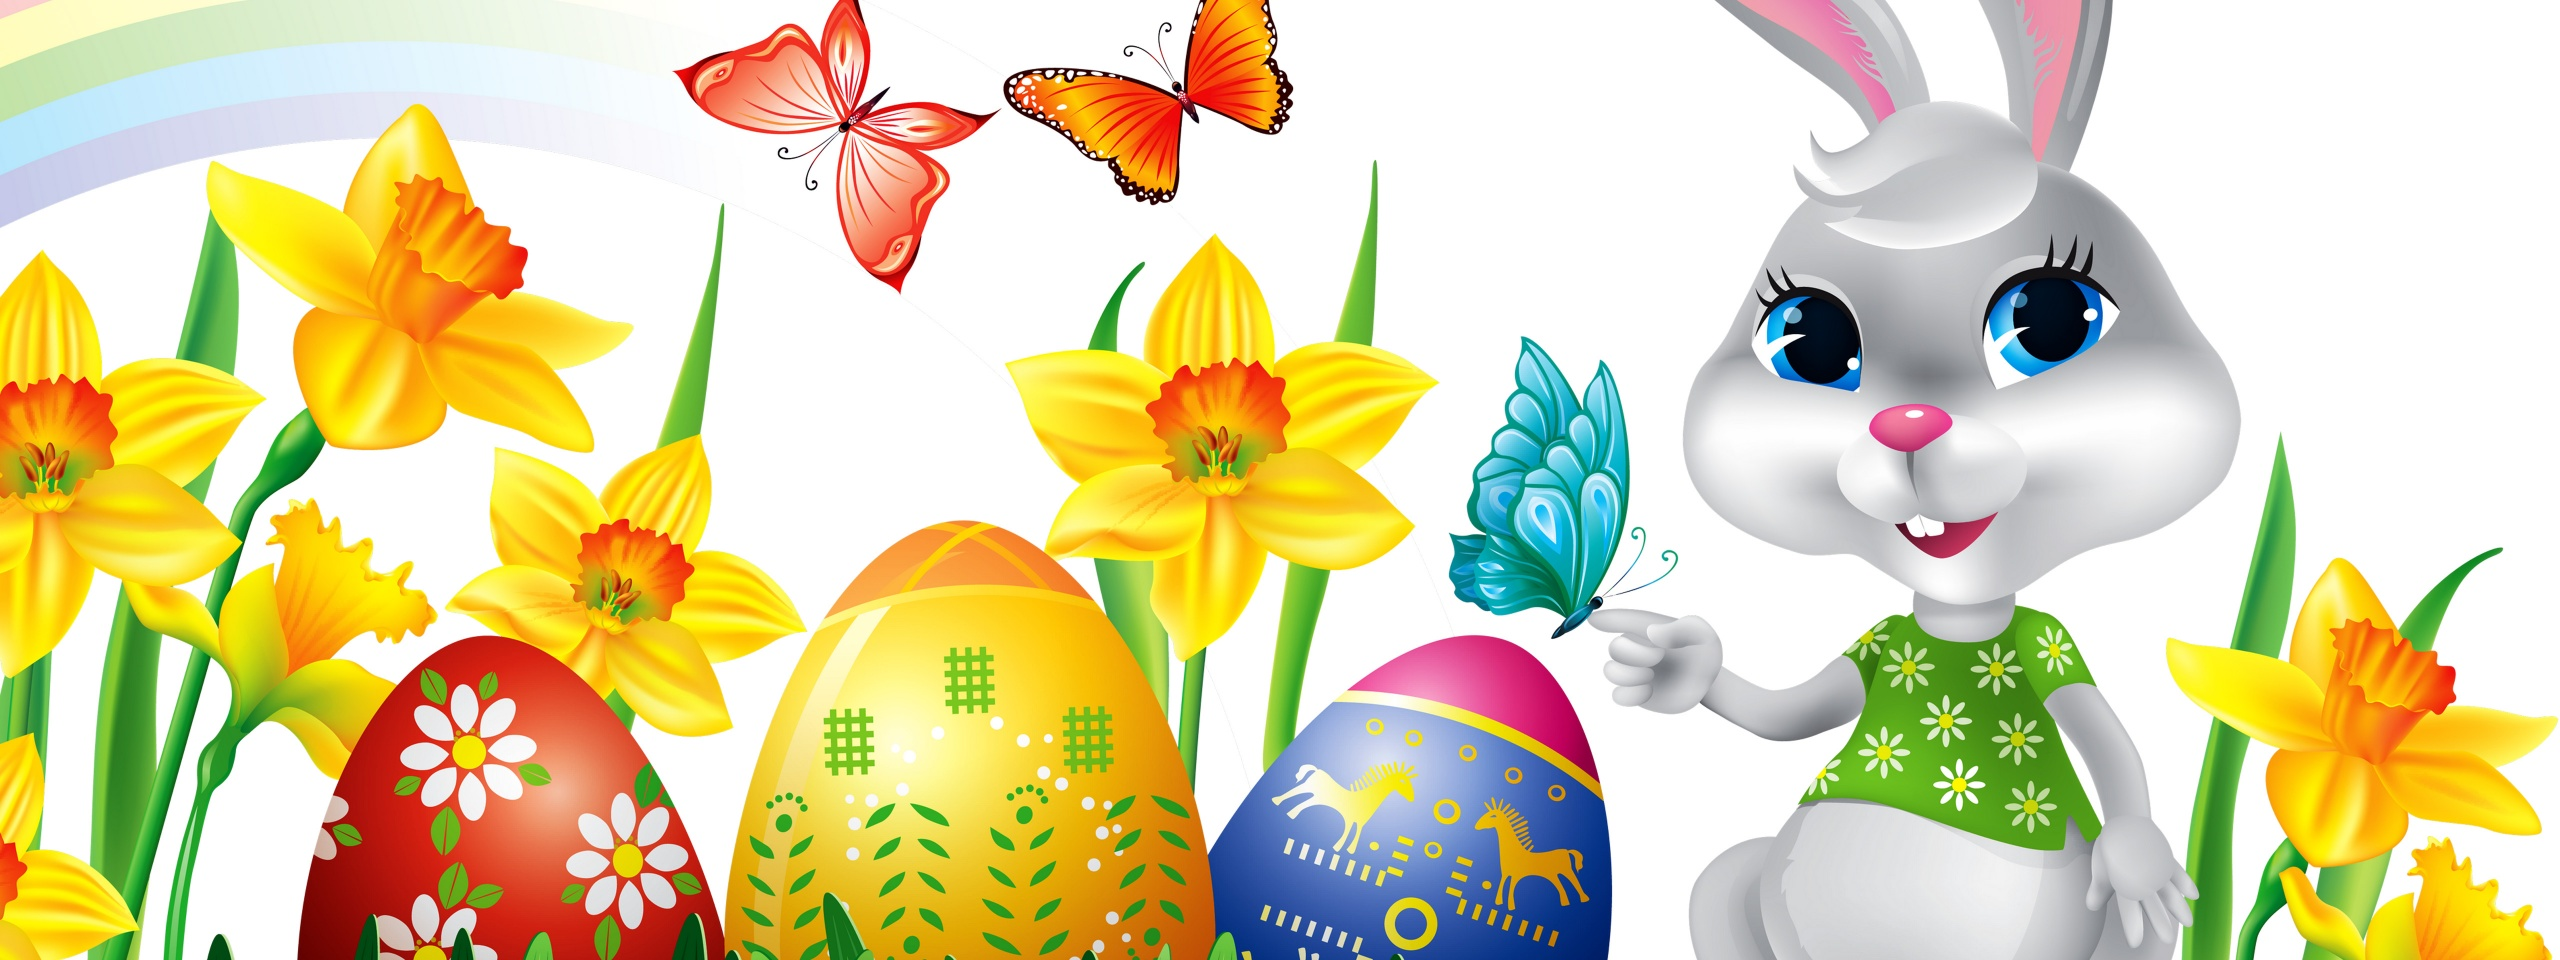 Easter Eggs Rabbit Flowers Butterfly